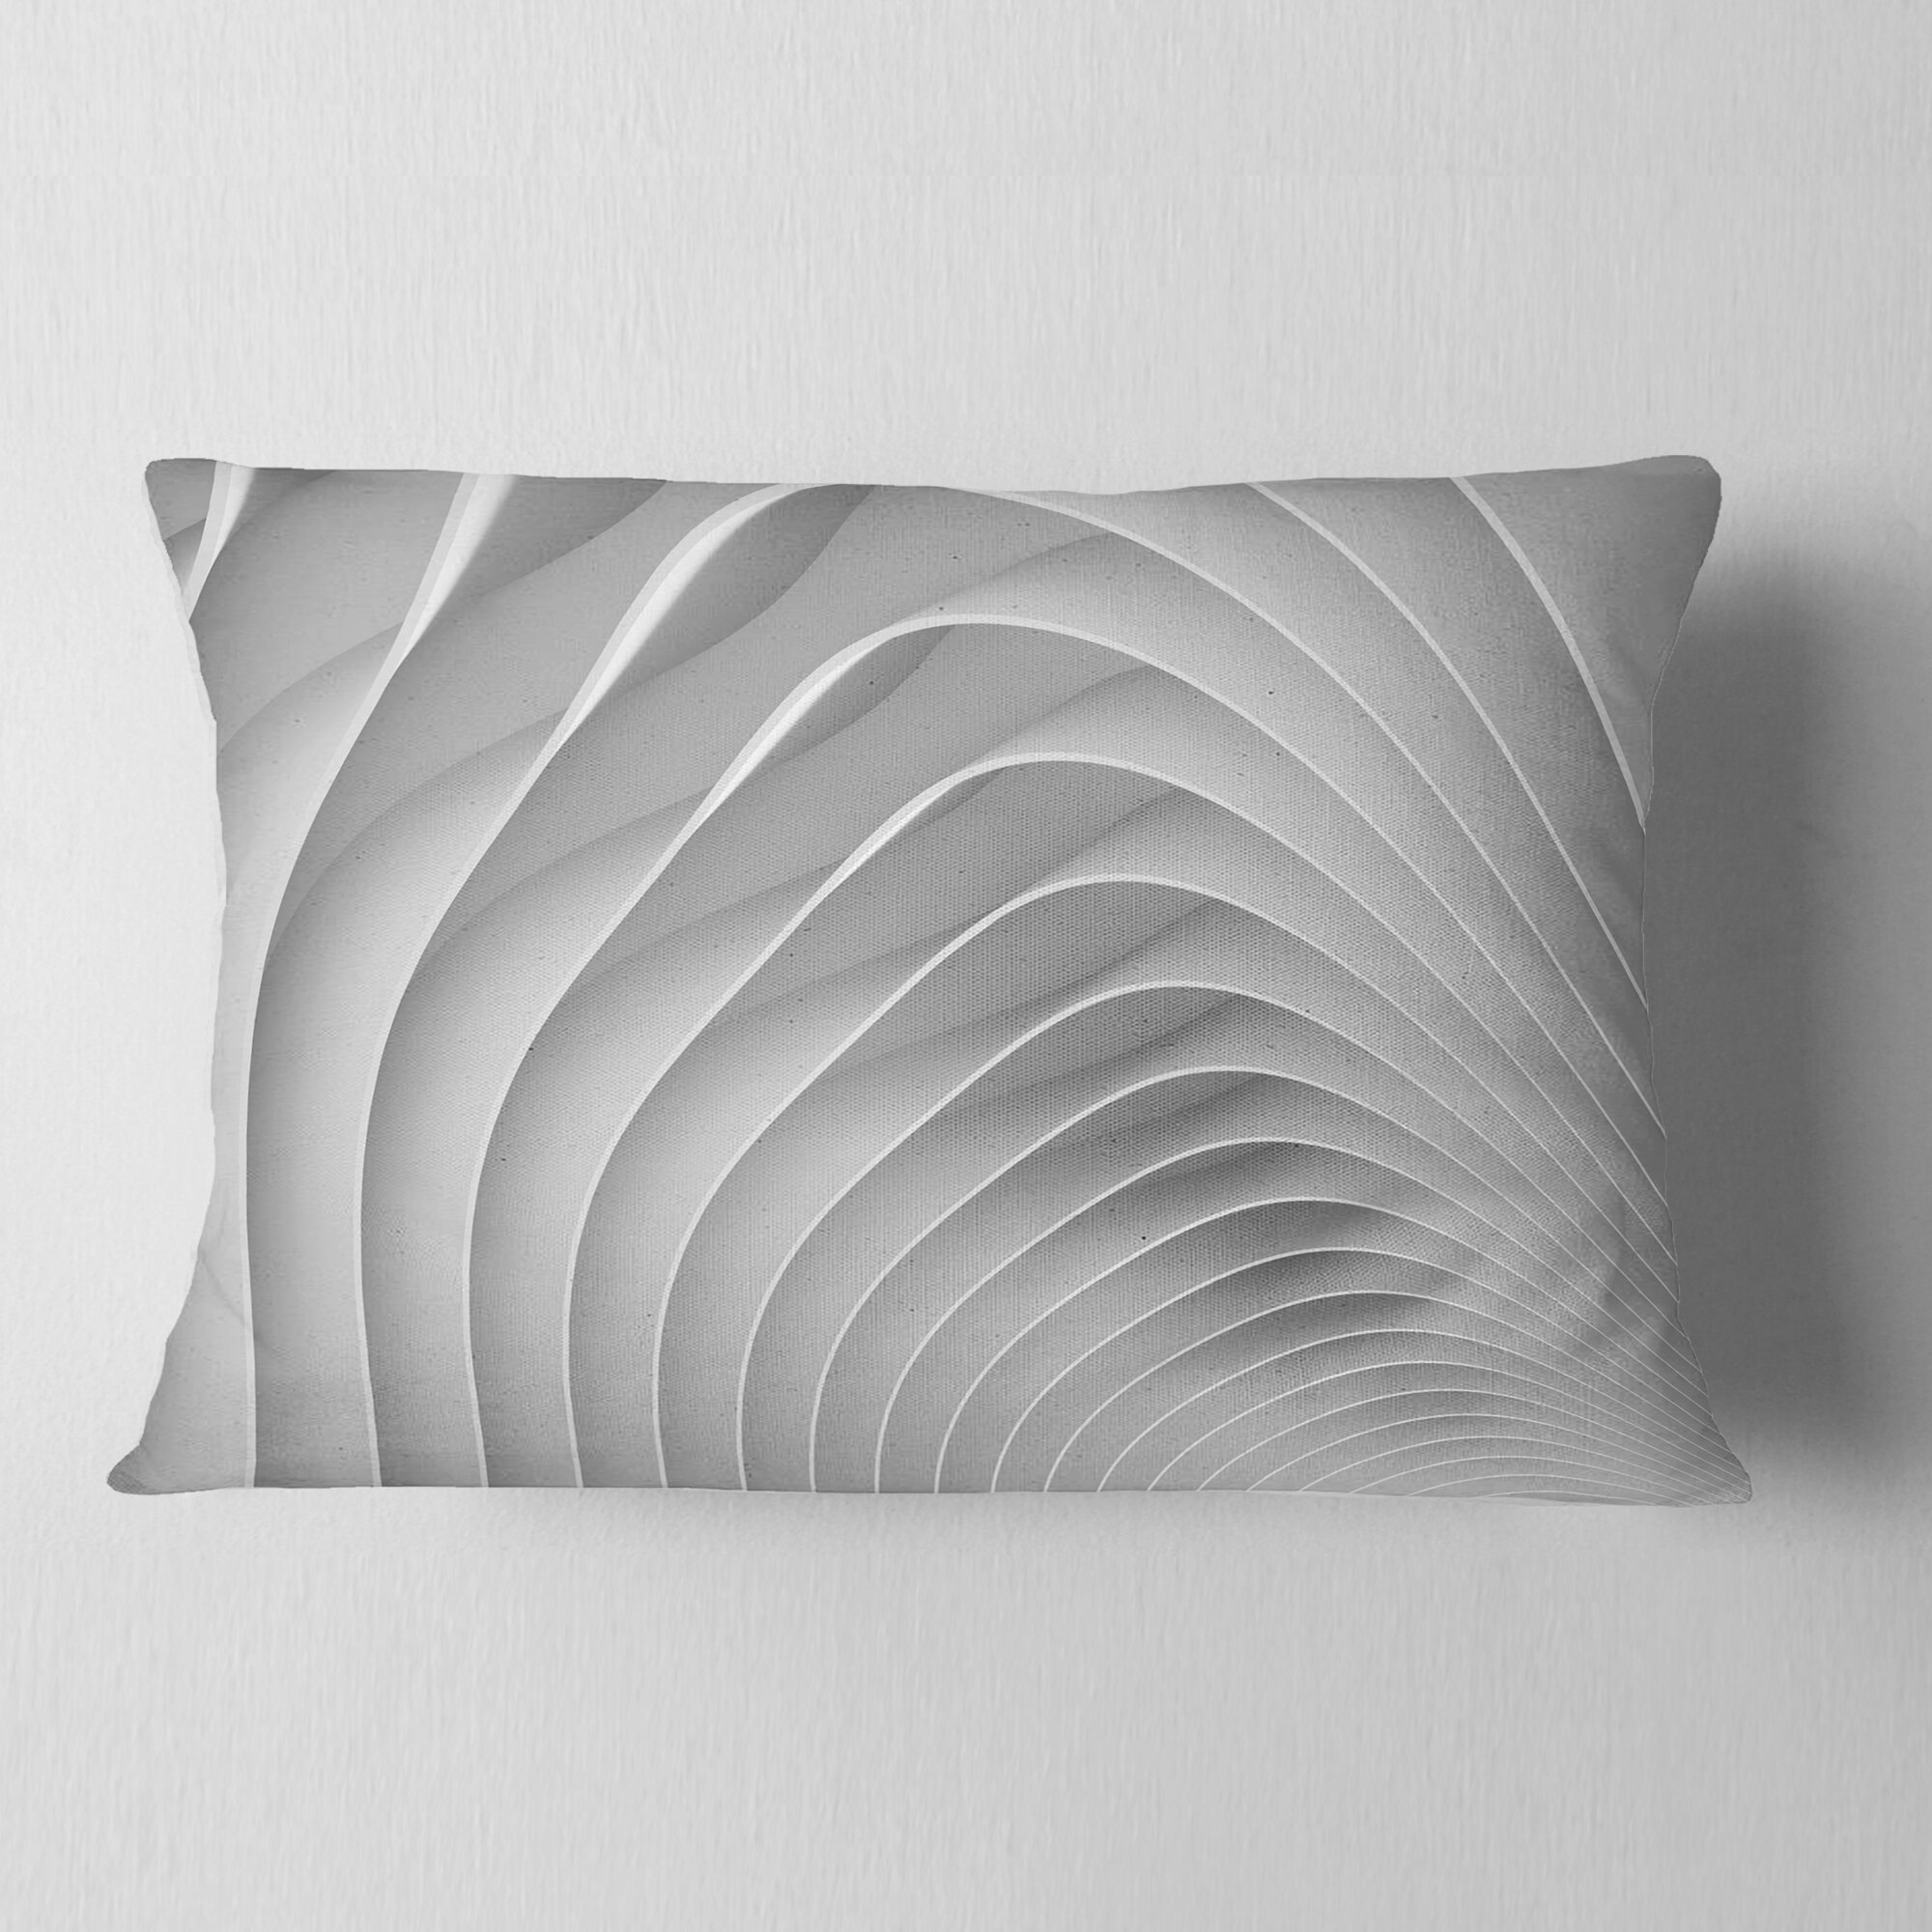 Fine Fractal Bulgy 3D Waves Throw Pillow Inzonedesignstudio Interior Chair Design Inzonedesignstudiocom